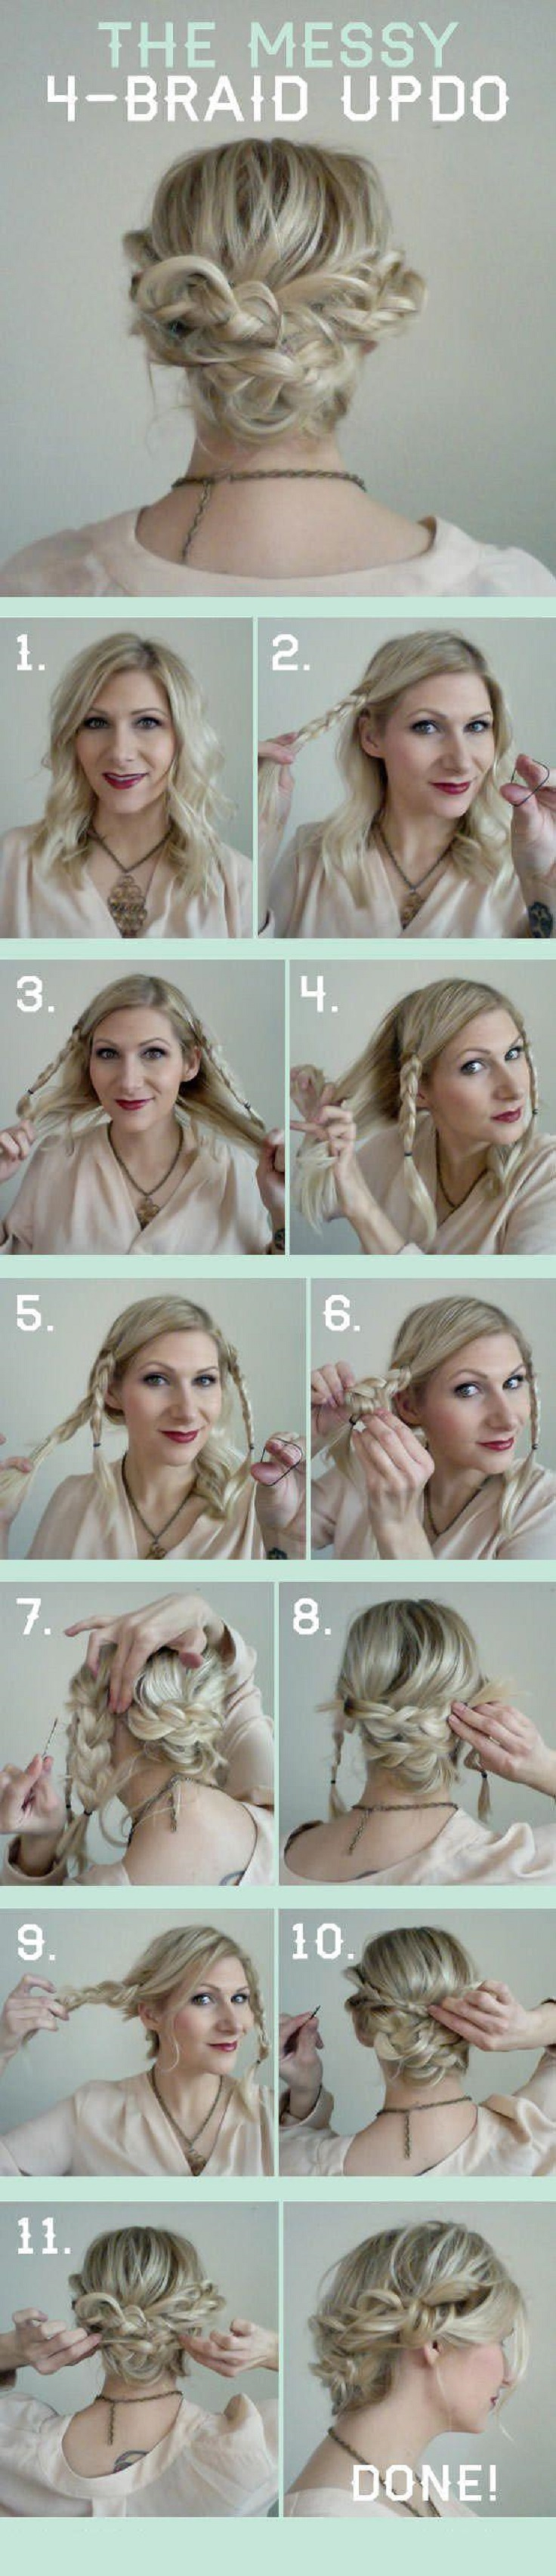 Top 10 Messy Braided Hairstyle Tutorials to Be Stylish ...